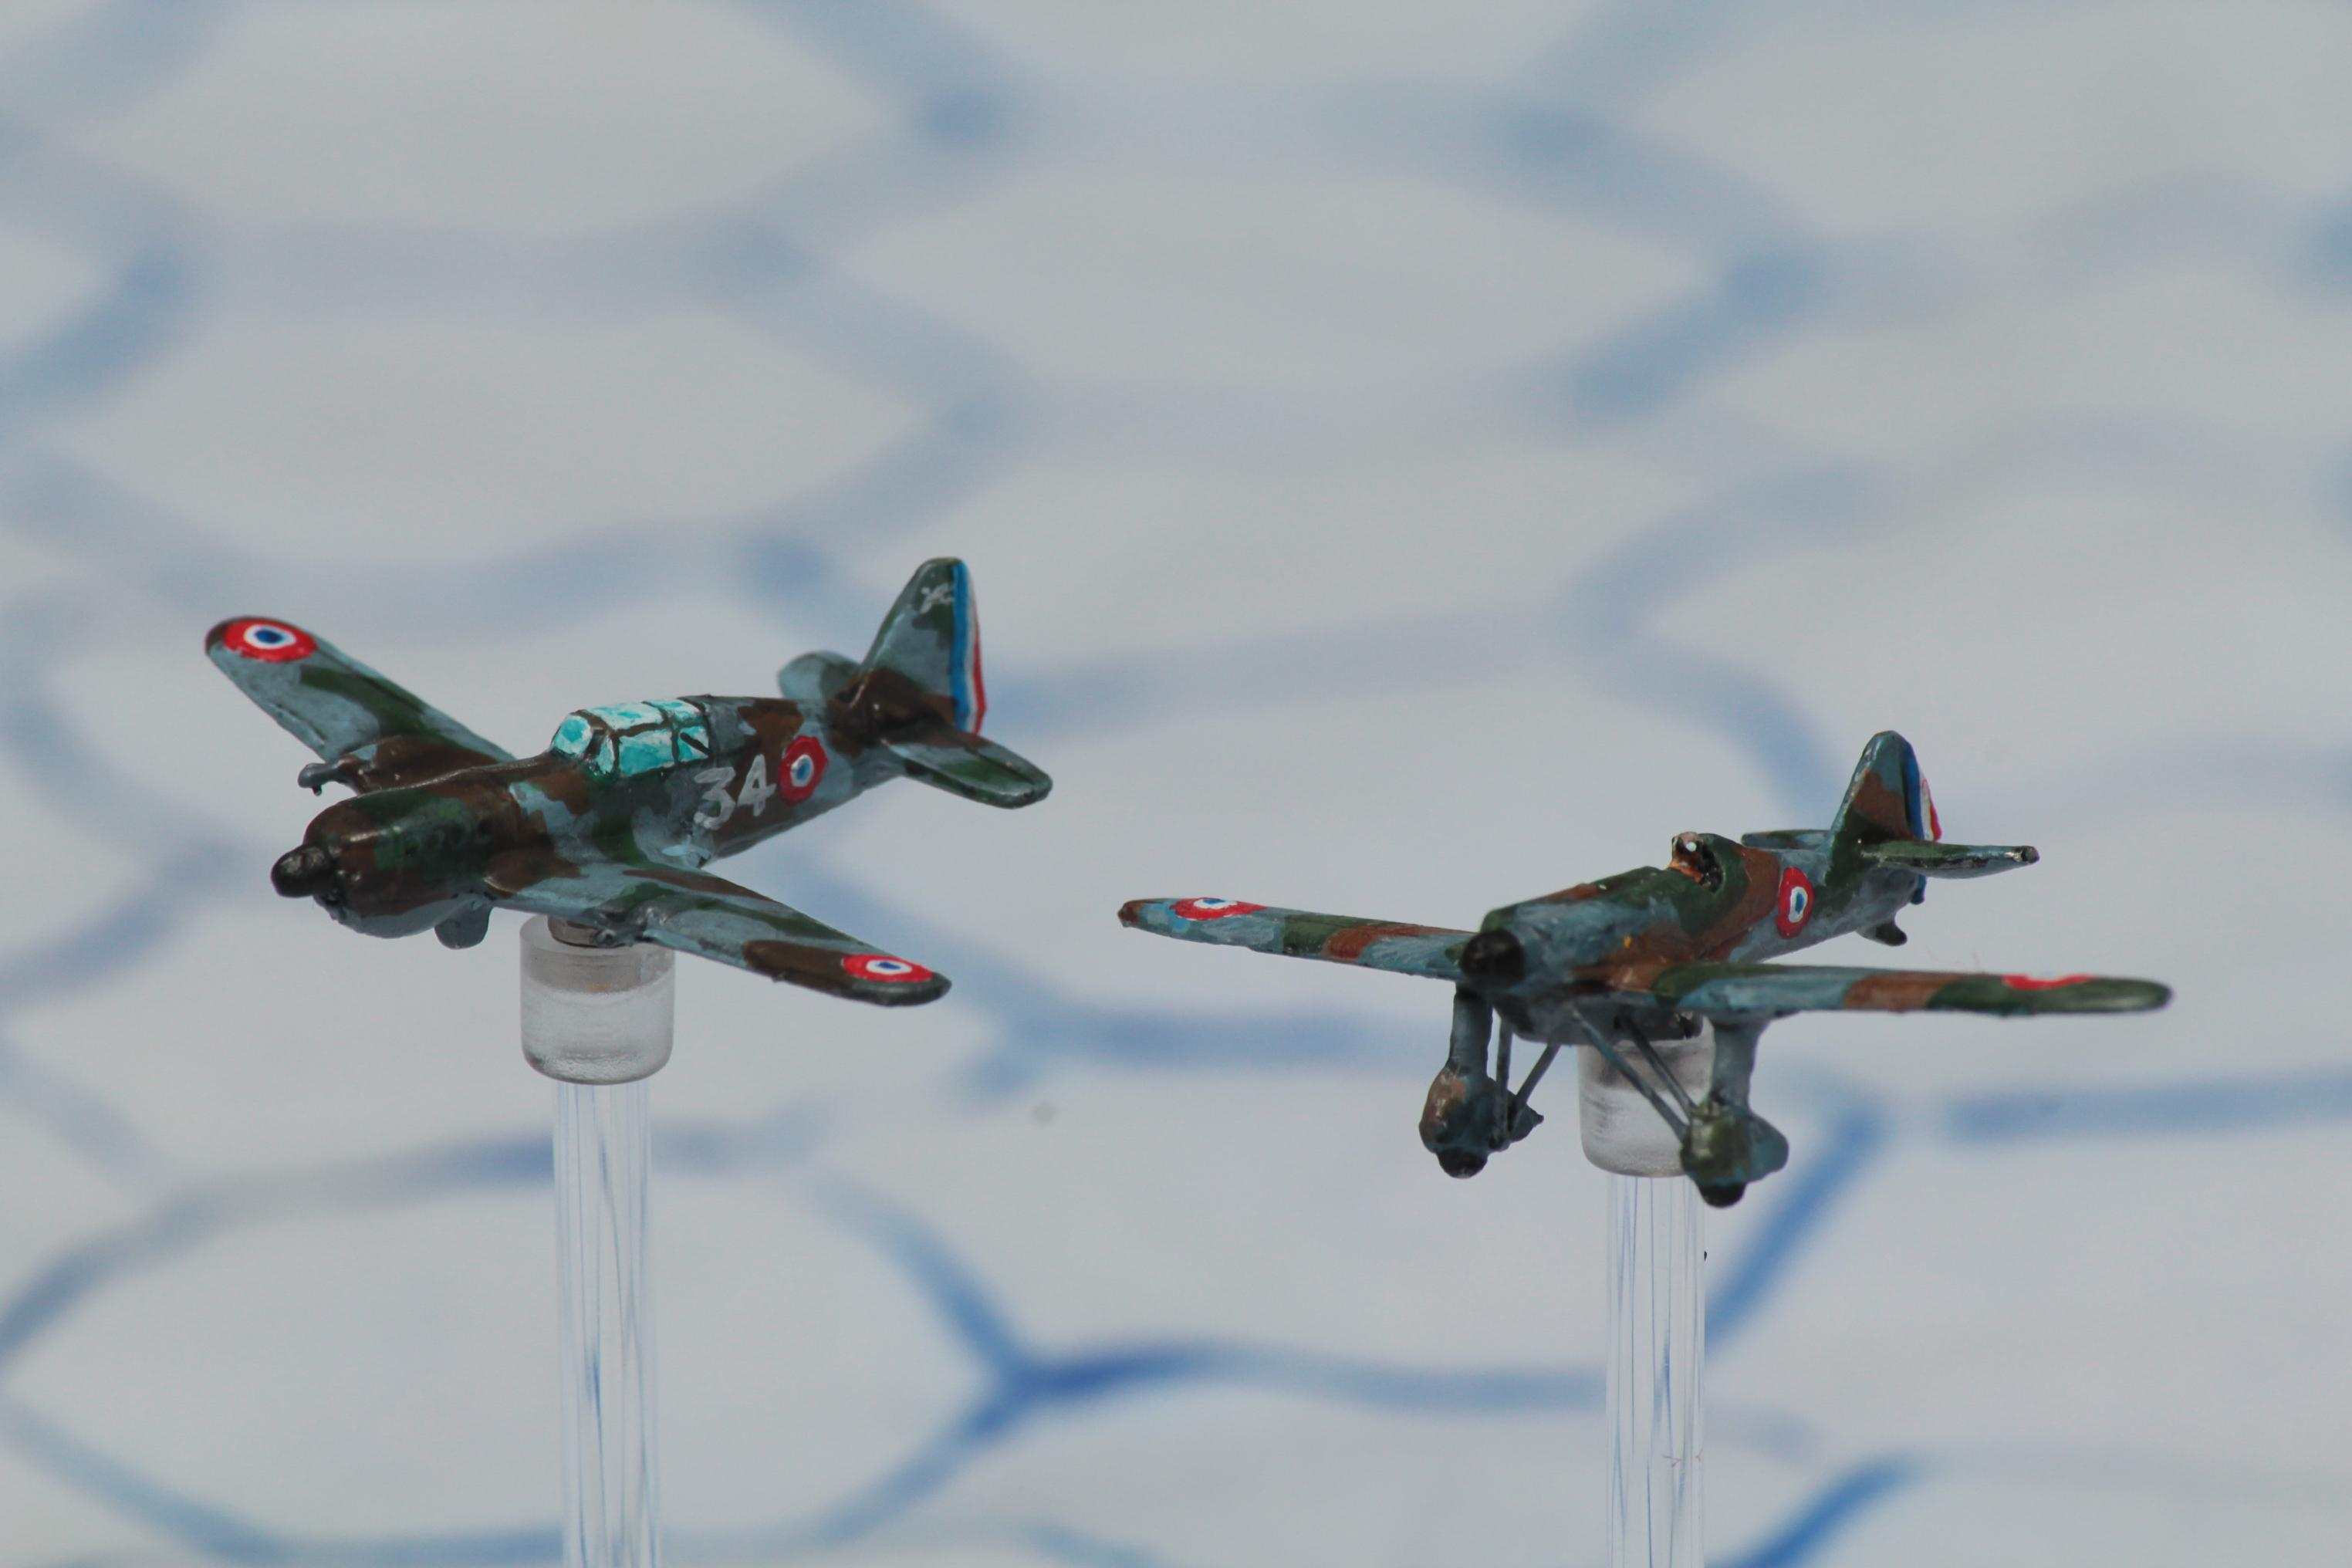 1:300 Scale, 6mm, 6mm Scale, Air Combat, Aircraft, Armée De L'air, Aviation, Finland, Fliers, France, French, Germans, Historic, Imperial Japan, Italian, Luftwaffe, Raf, Republic Of China, Soviet, Usaaf, World War 2